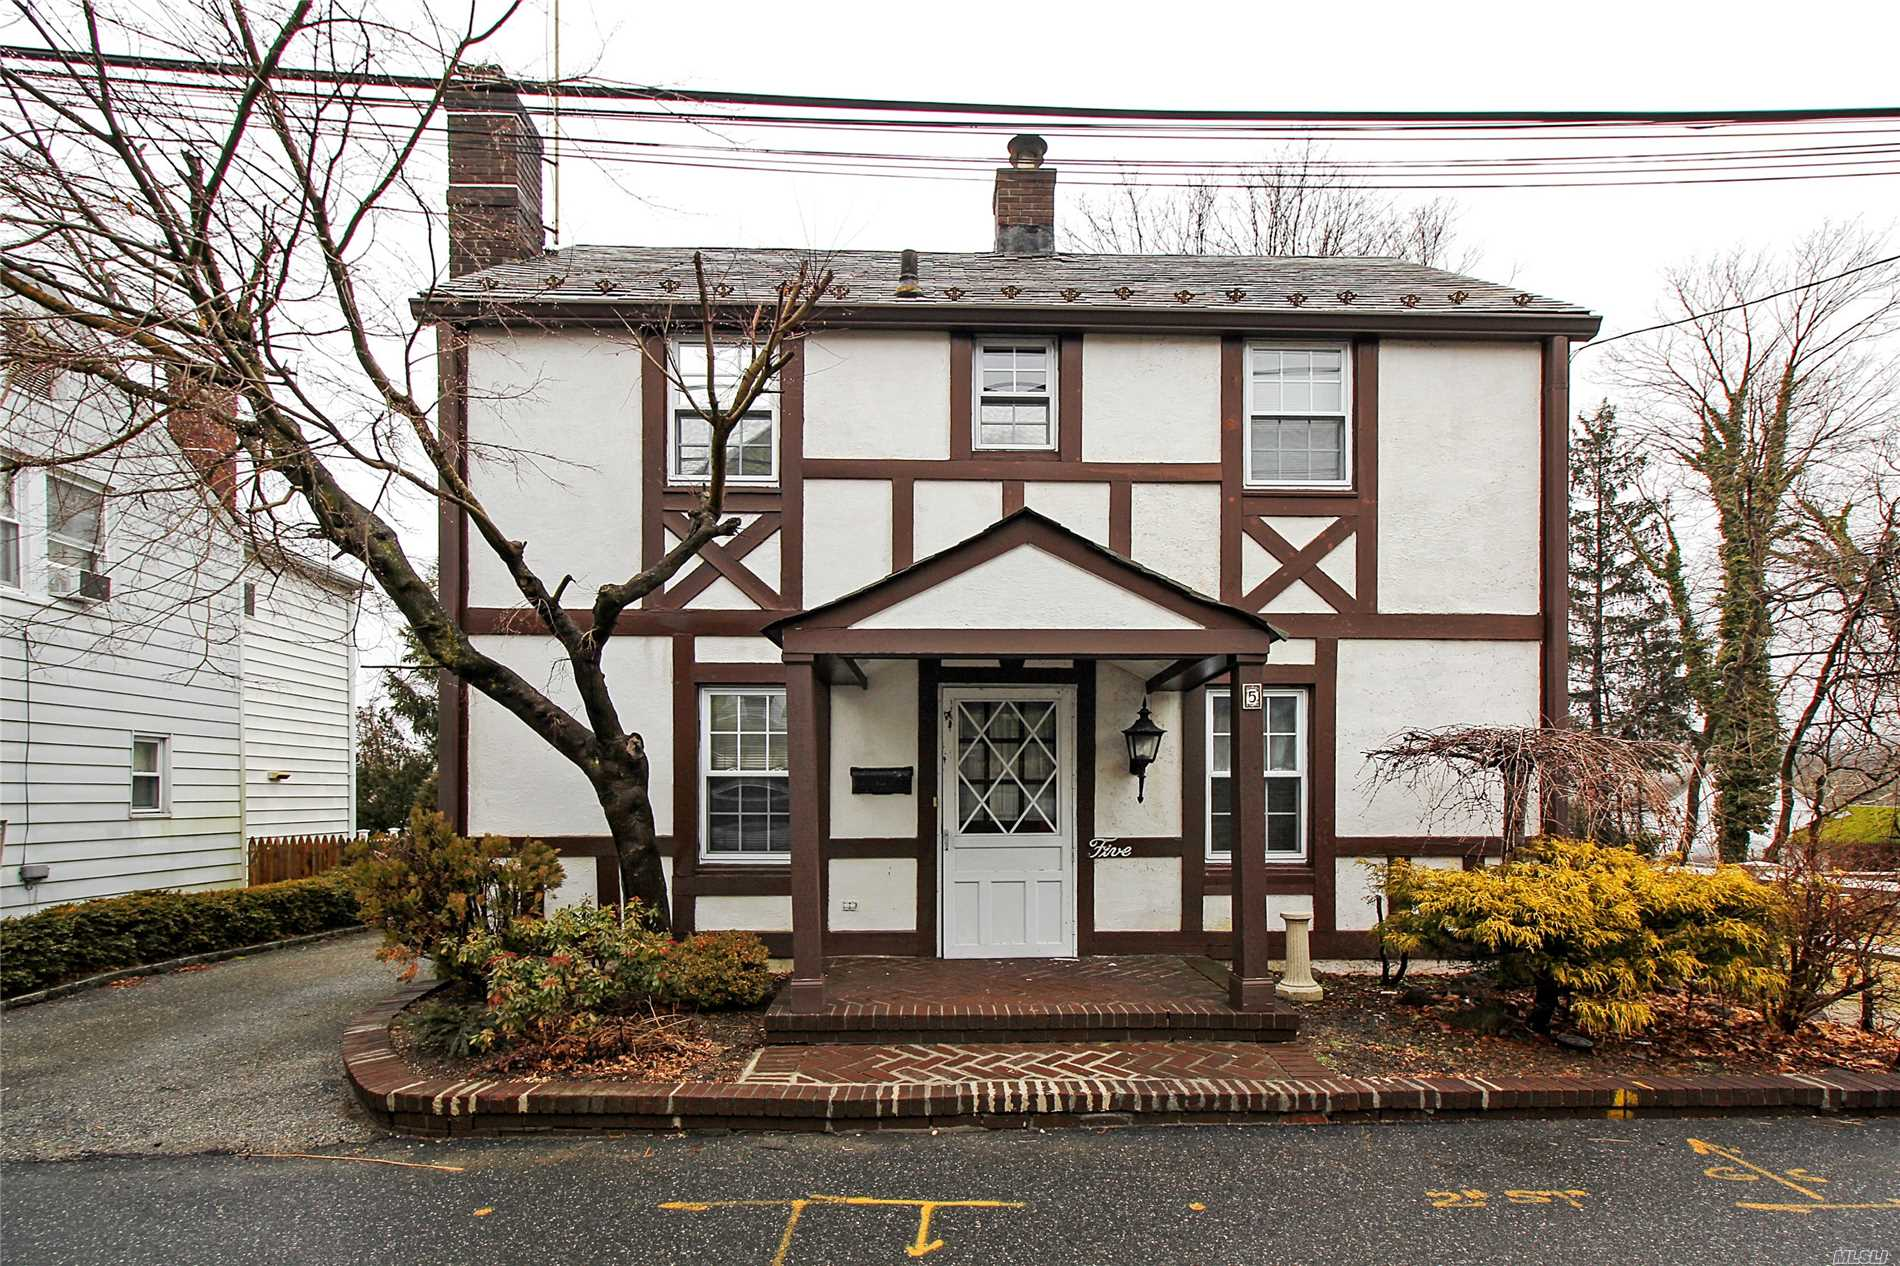 Charming Colonial Home On Quiet Block Just Off Middle Neck Road Close To Kings Park. This Home Has A Lovely Living Room With Fireplace And Wood Floors, A Dining Room, And Kitchen On First Floor. This Home Also Has Two Bedrooms On The Second Floor Plus A Full Bath. The Finished Basement Has Lots Of Extra Storage. Private Off Street Parking And Backyard